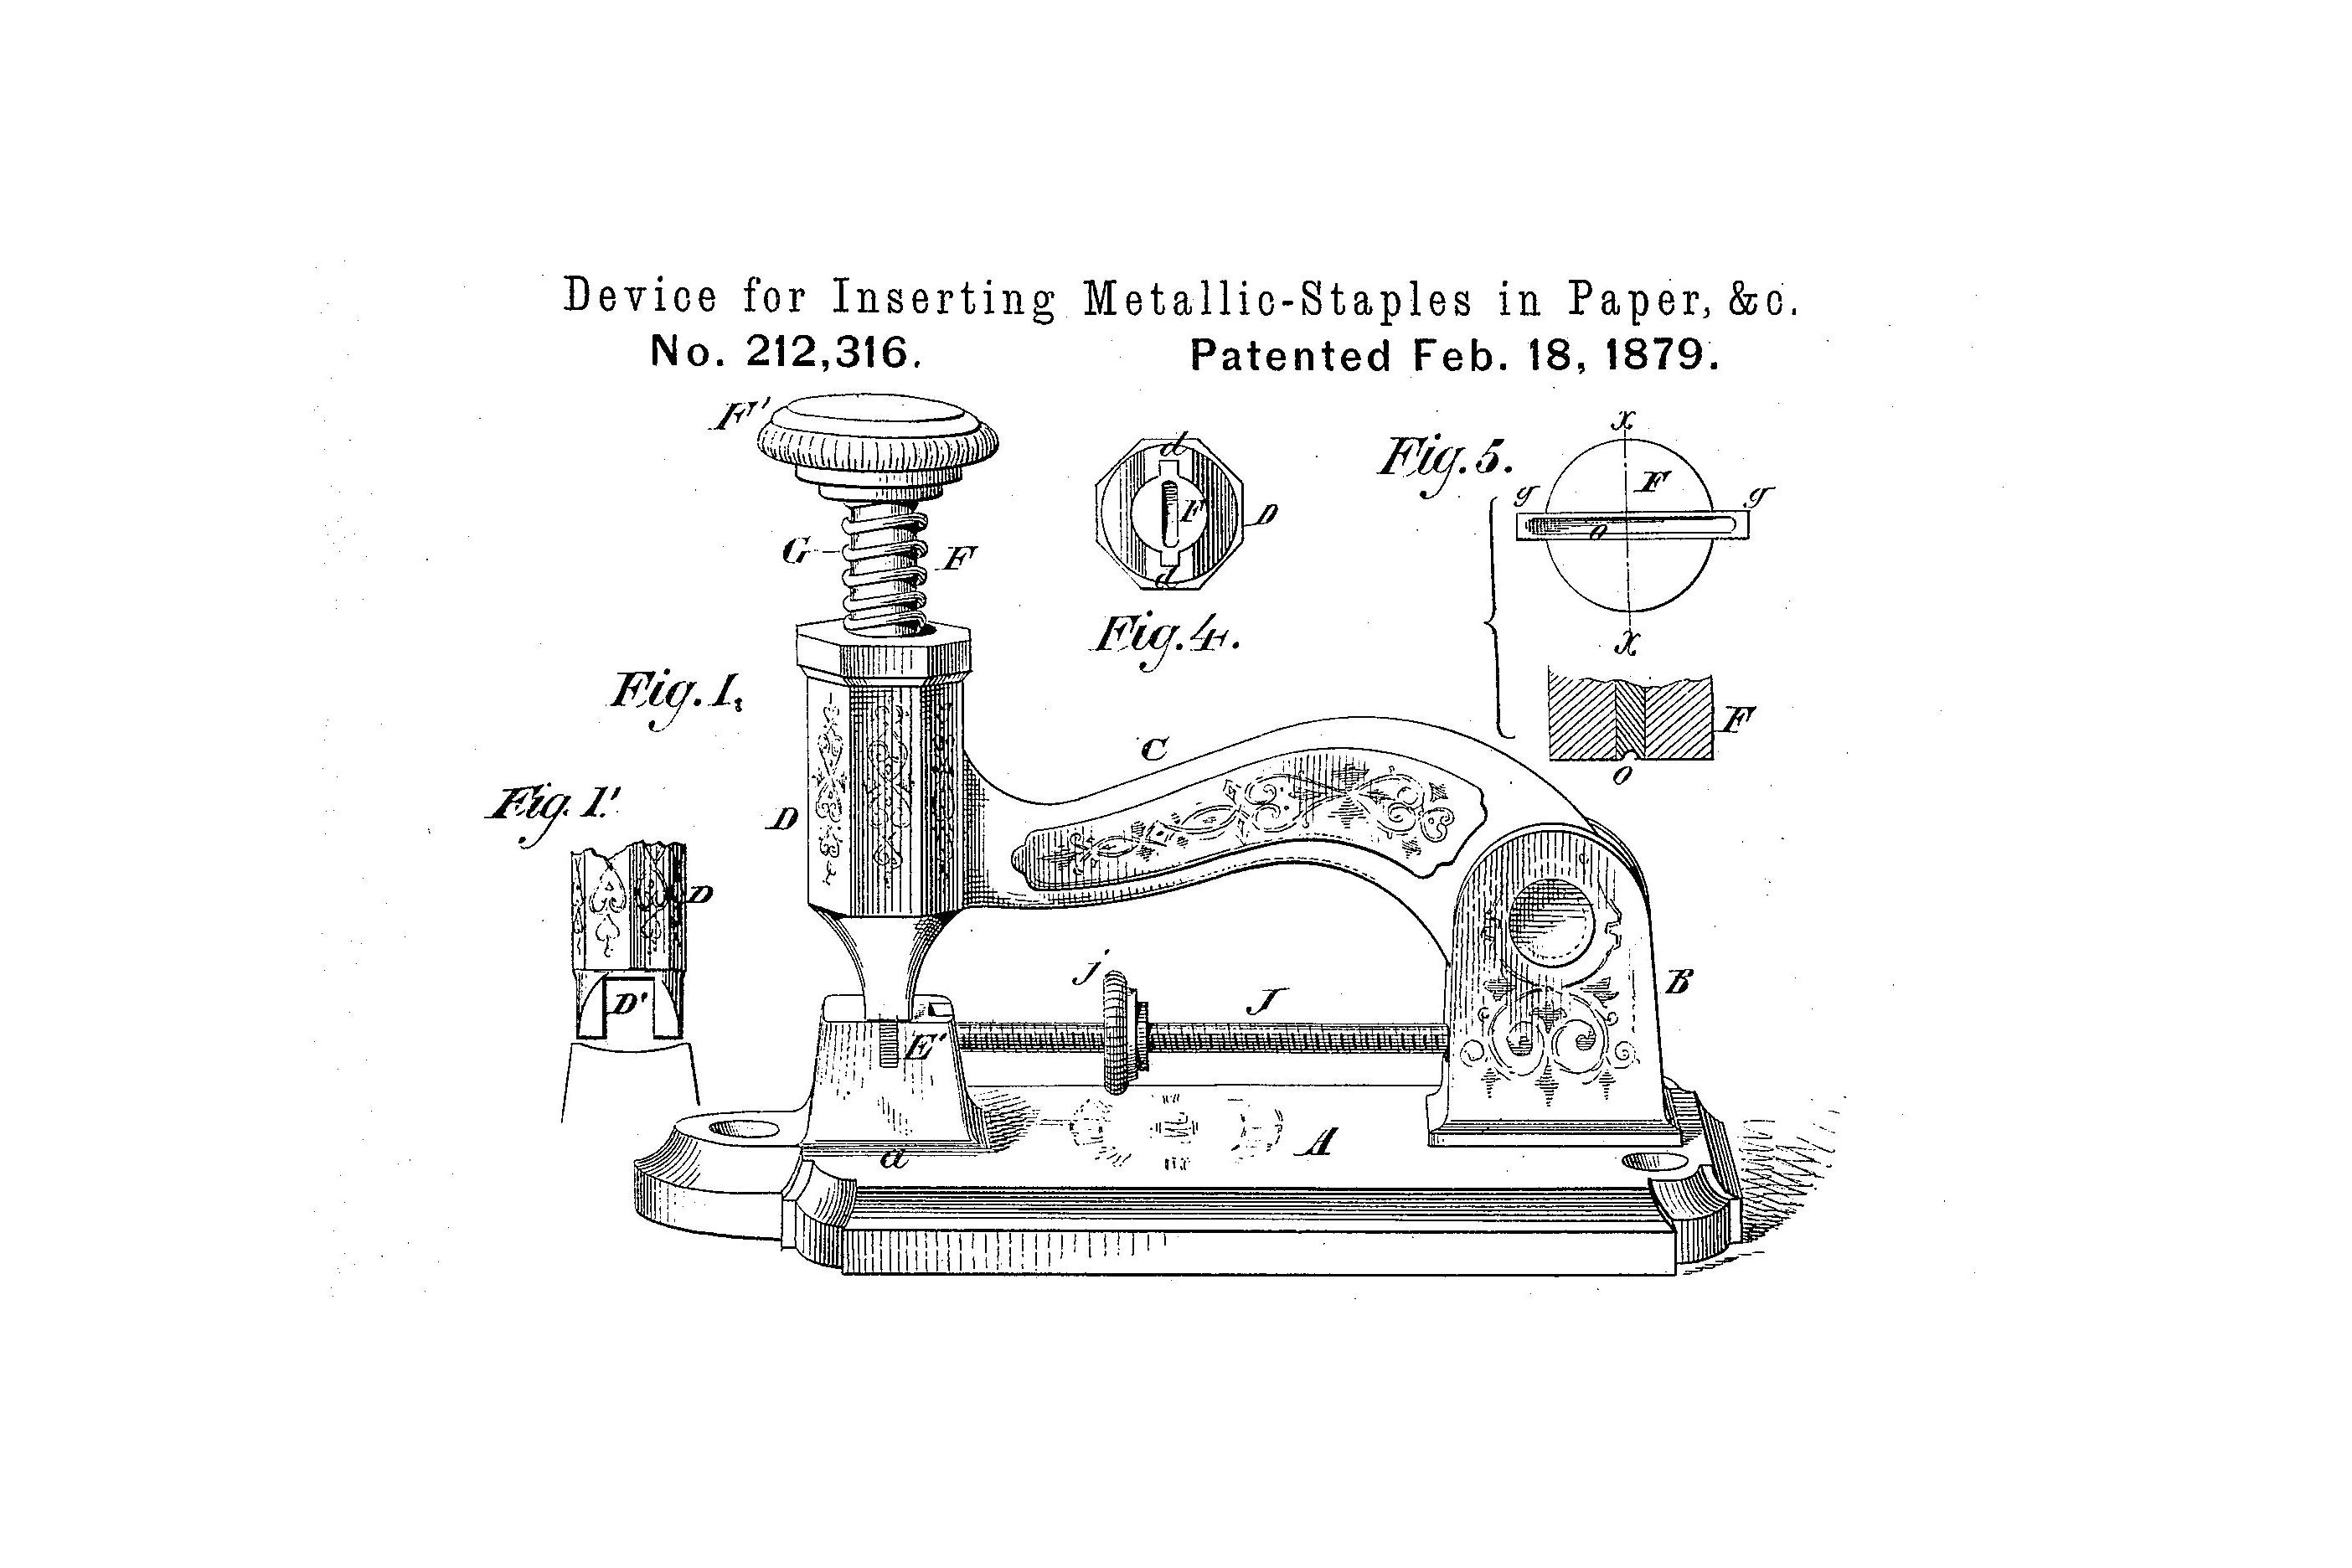 Drawing from patent document, 1879